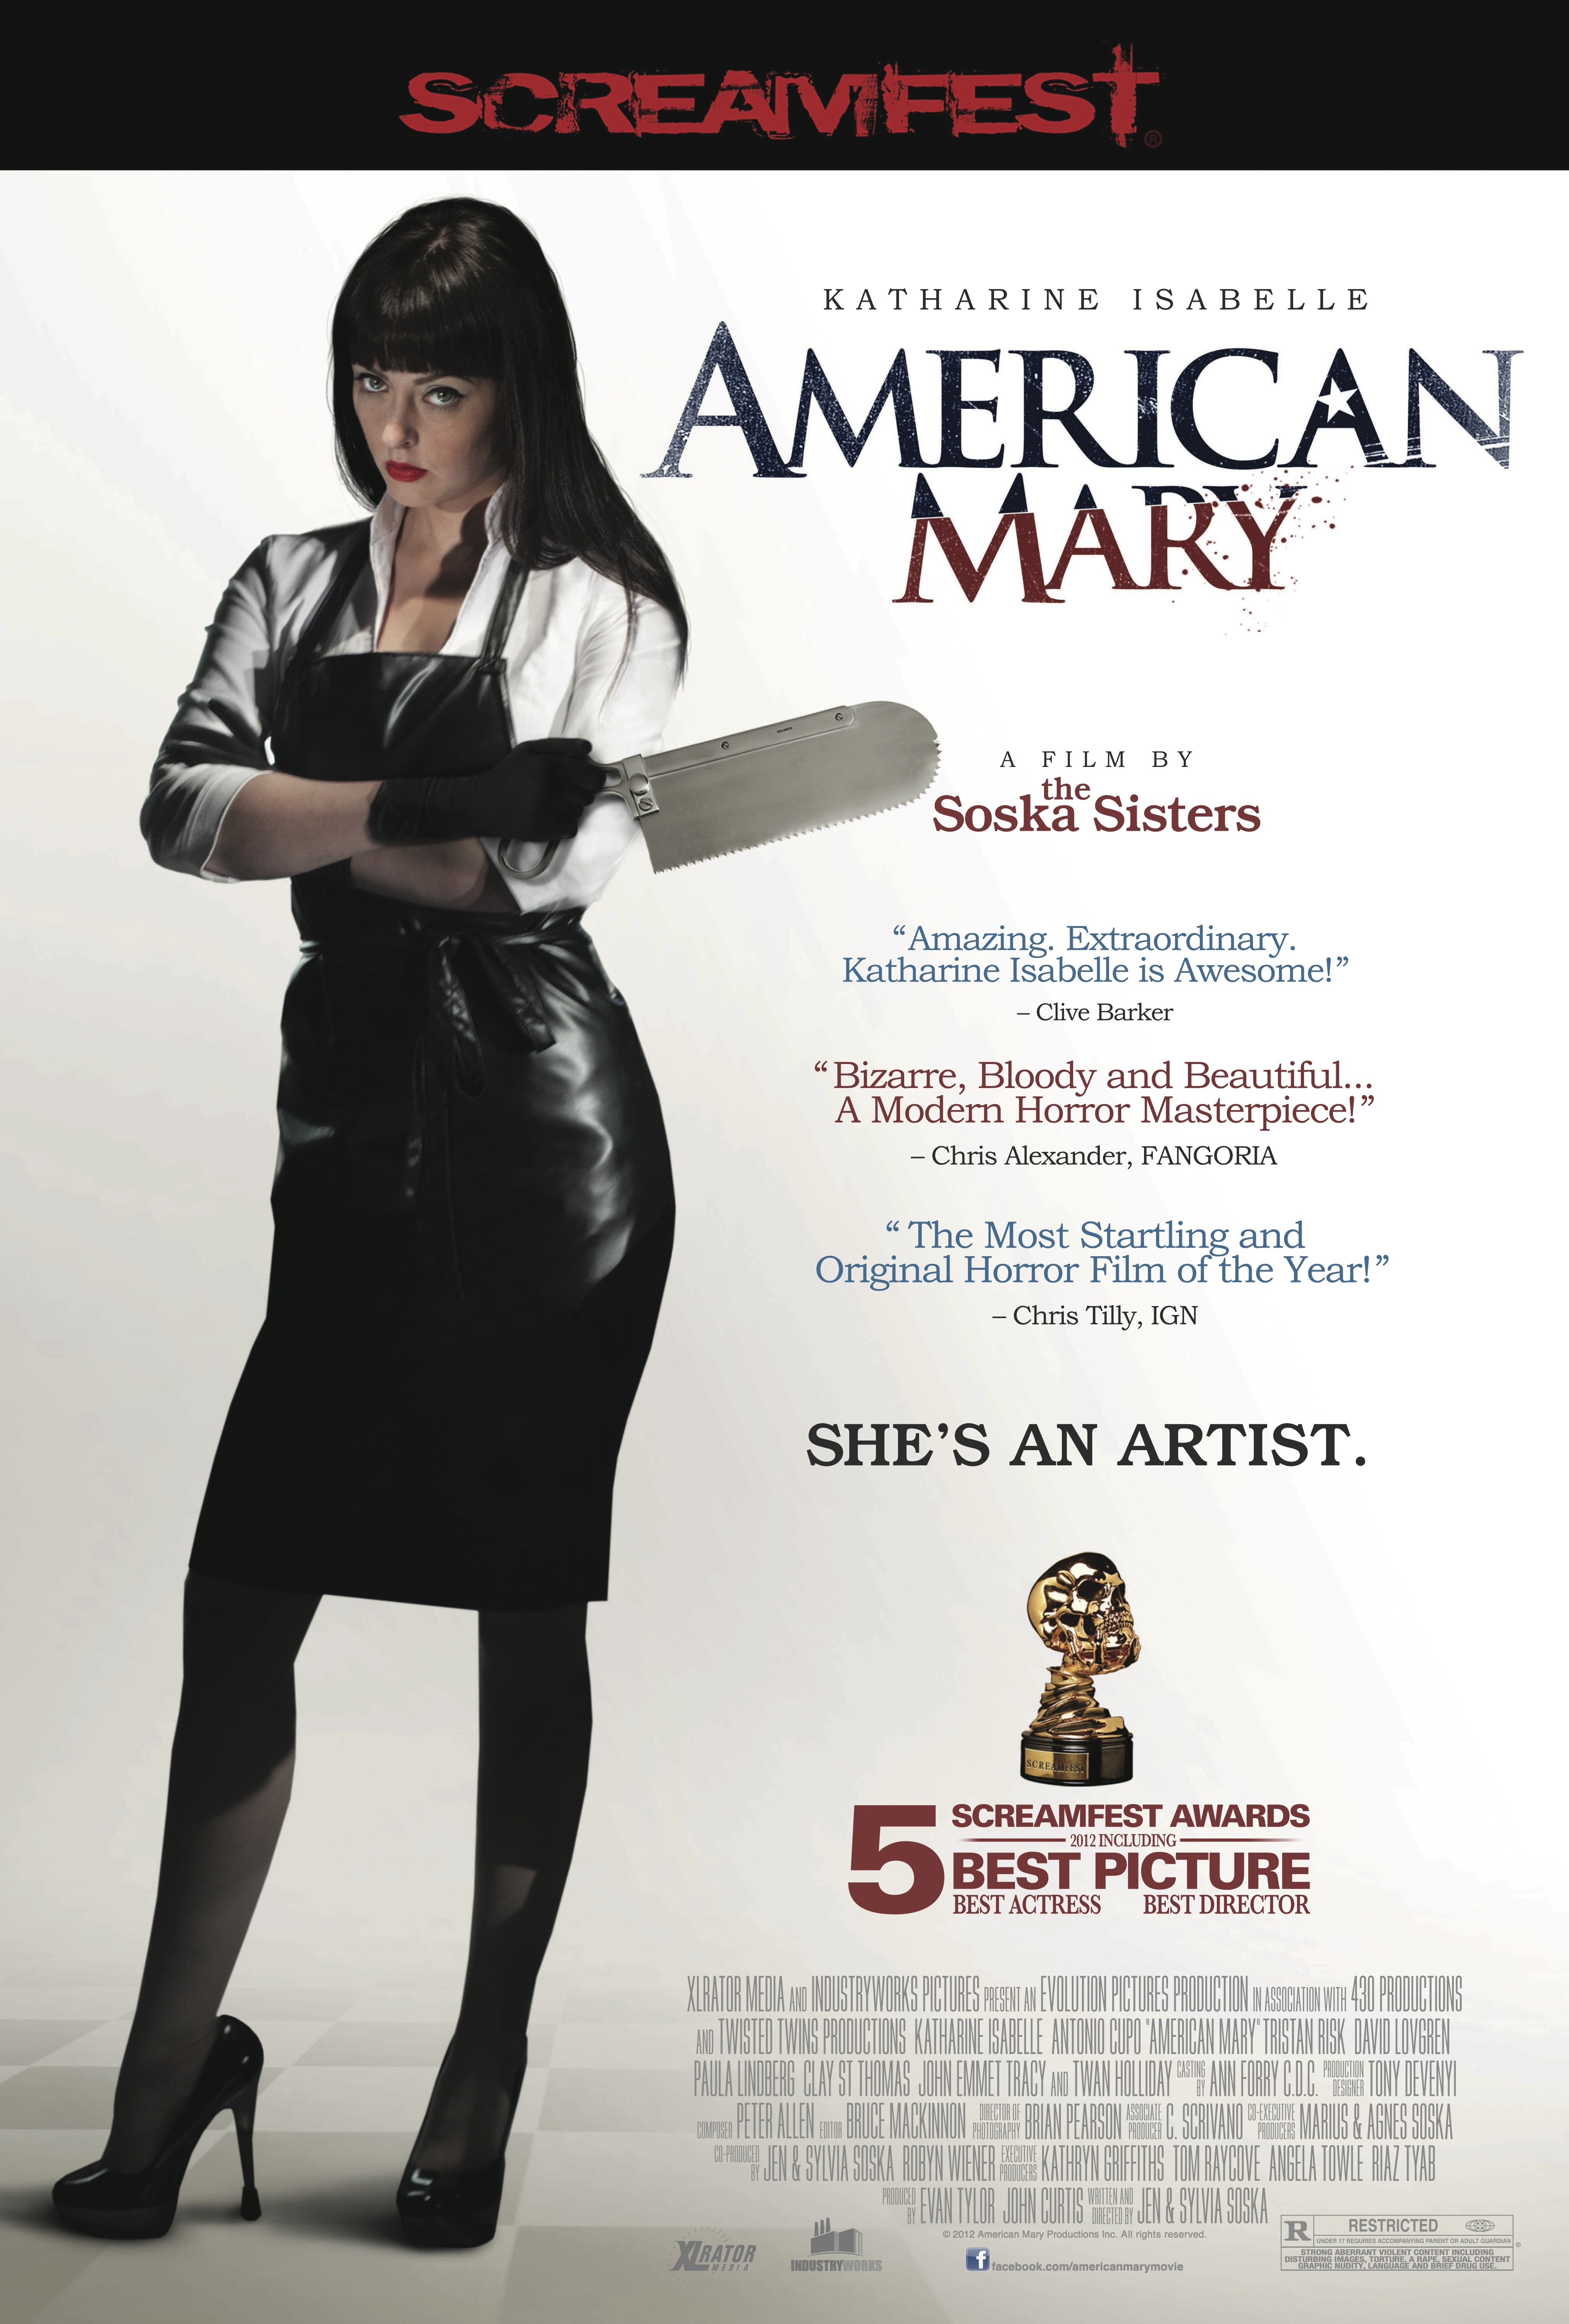 The Soska Sisters Stirring Up Scares in New American Mary Key Art The Soska Sisters Stirring Up Scares in New American Mary Key Art